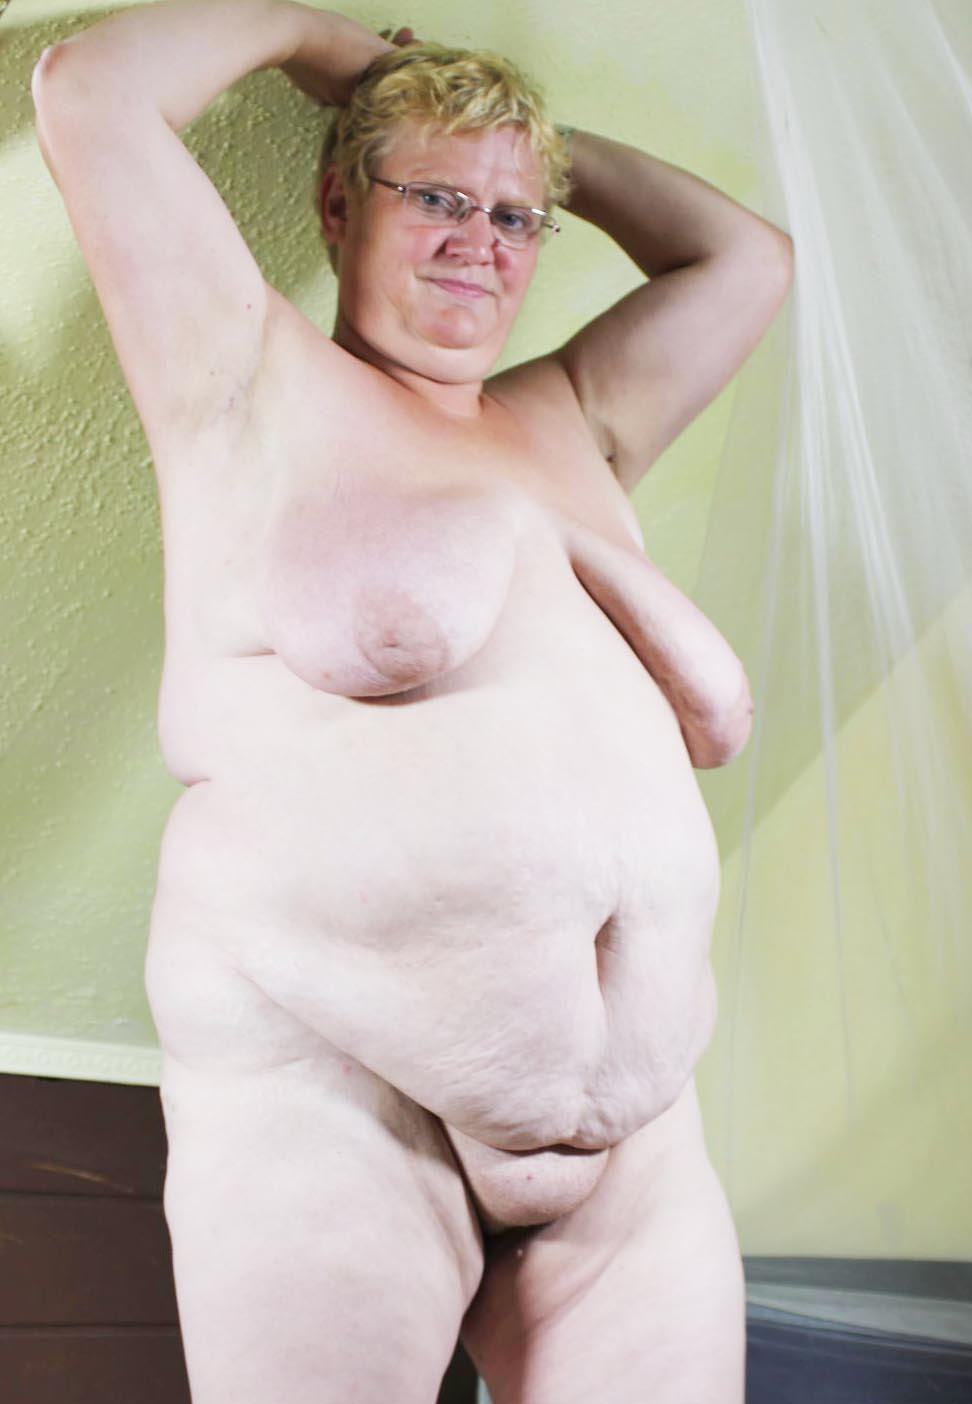 emilie68-granny-gilf-sex-contacts-manchester